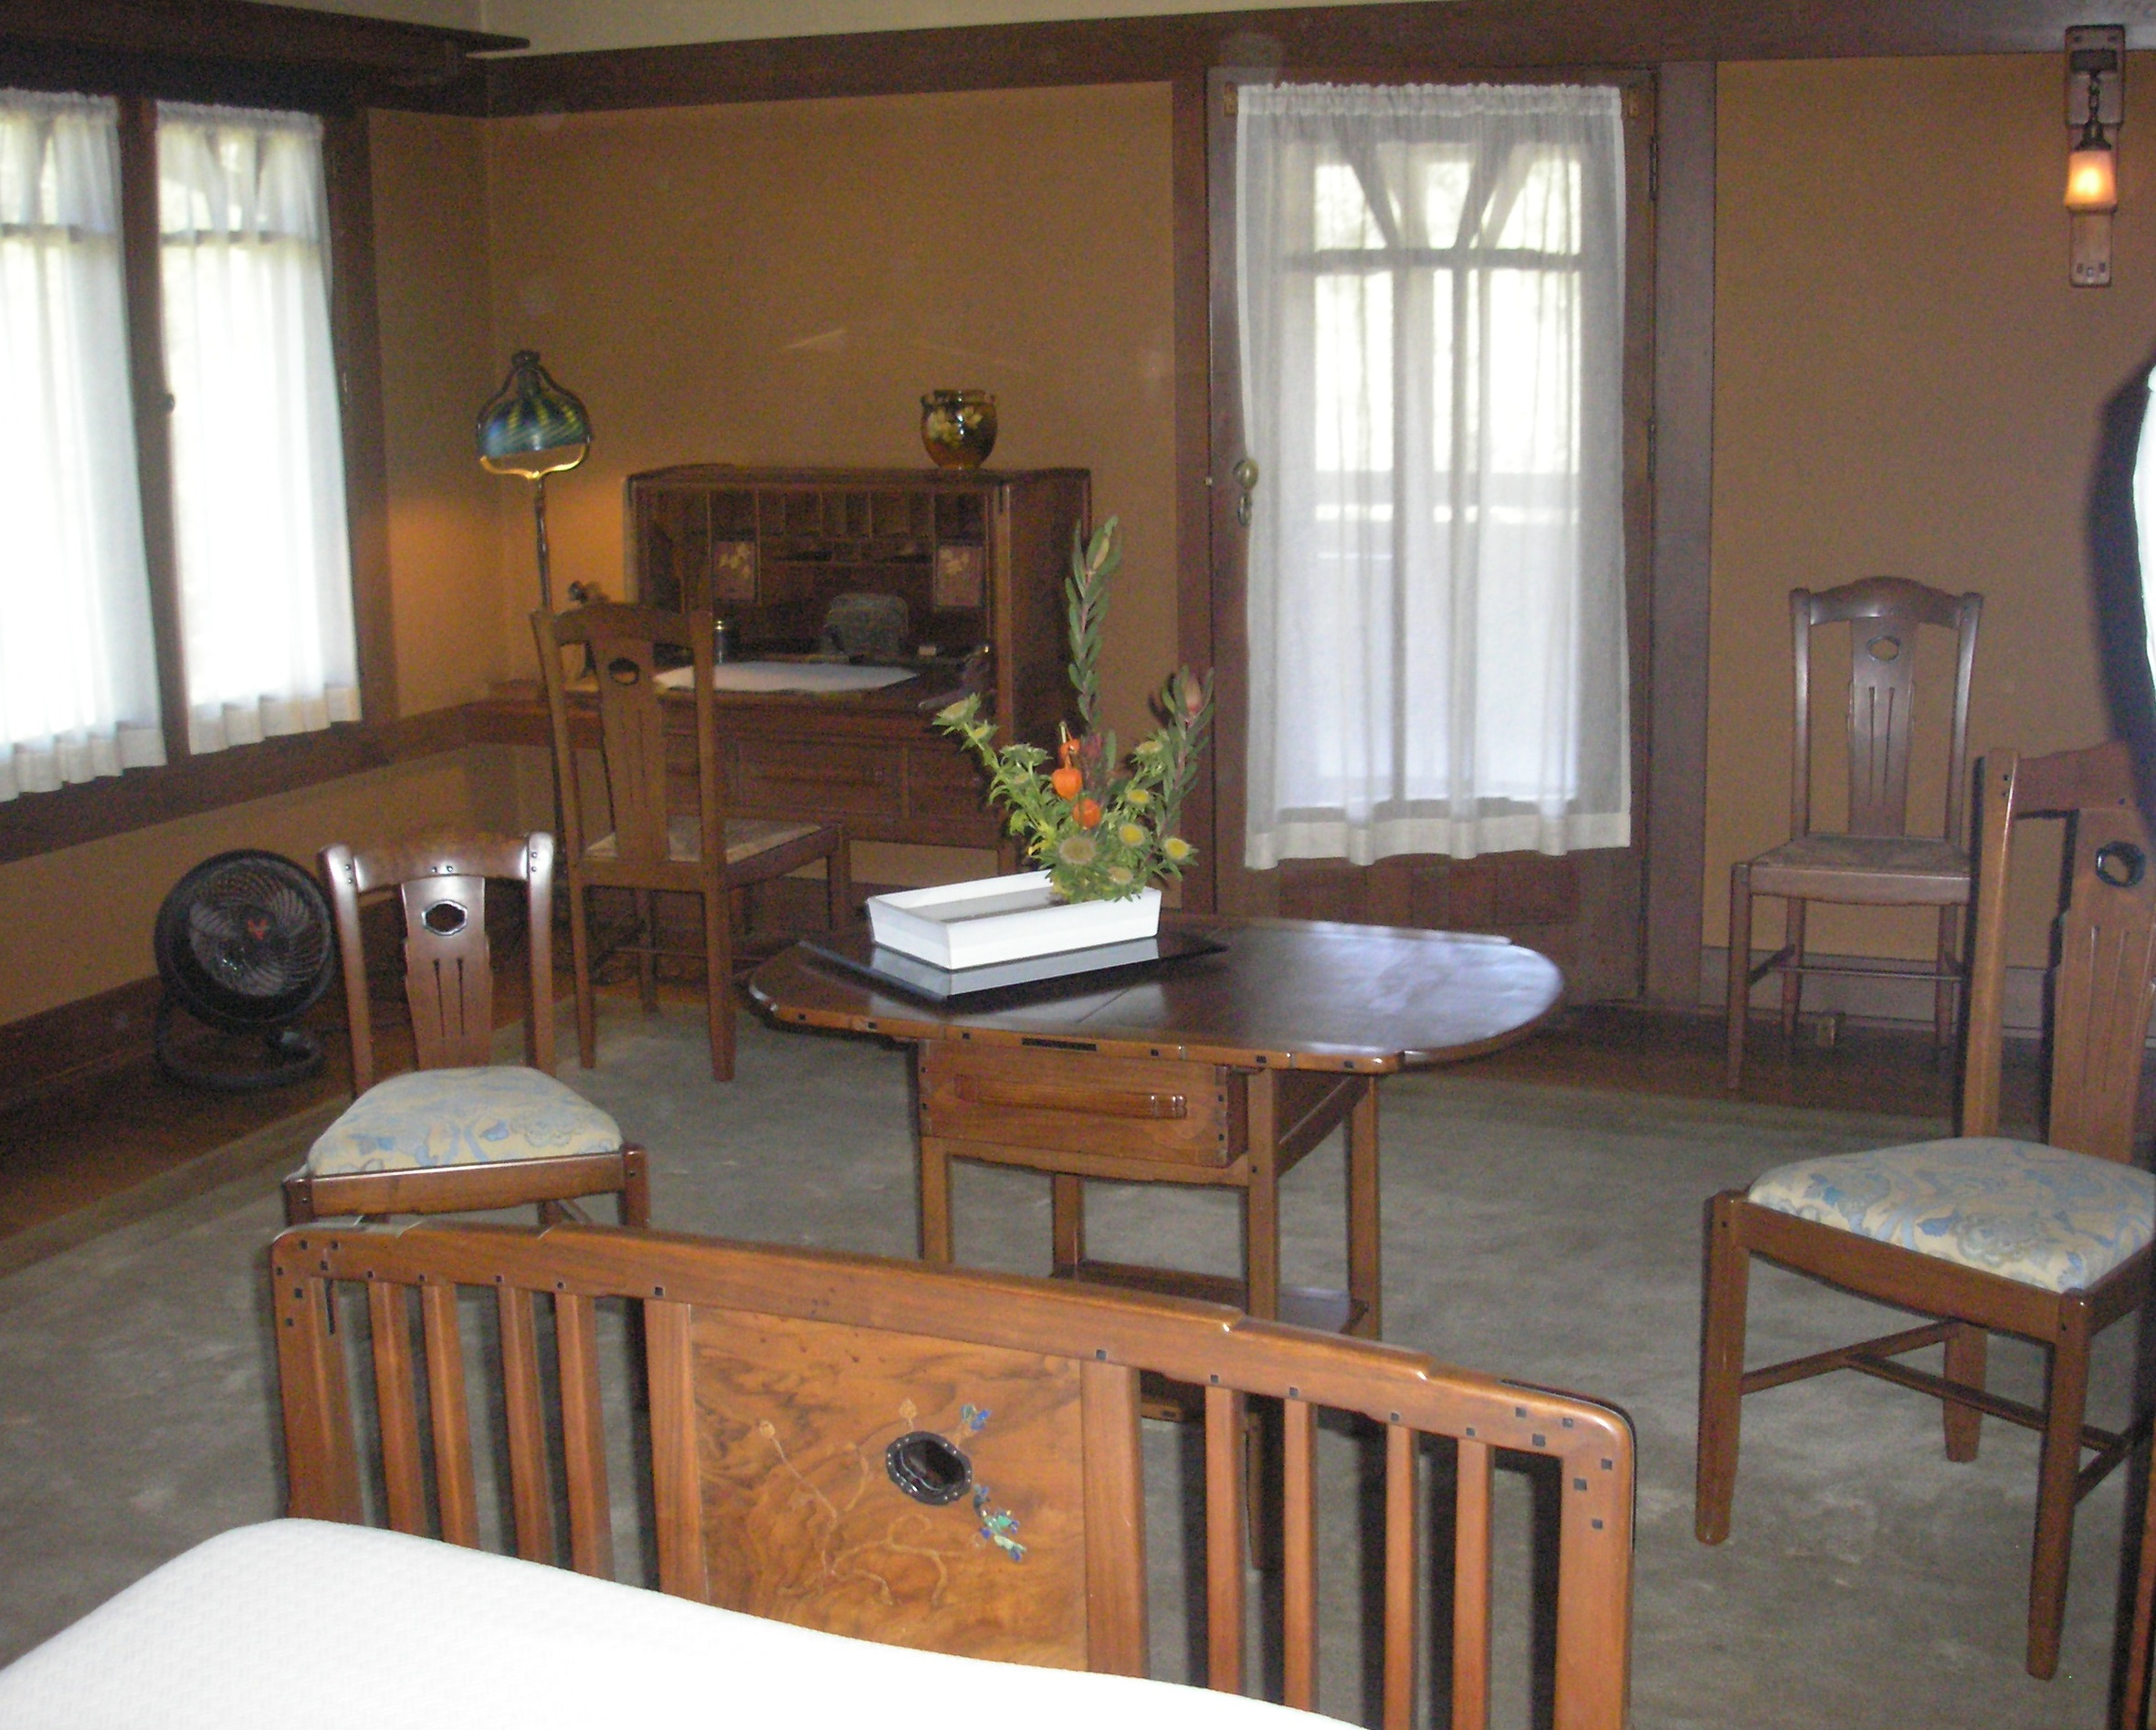 This Is A Second Floor Bedroom In The Gamble House. There Is Room For Lots Part 74